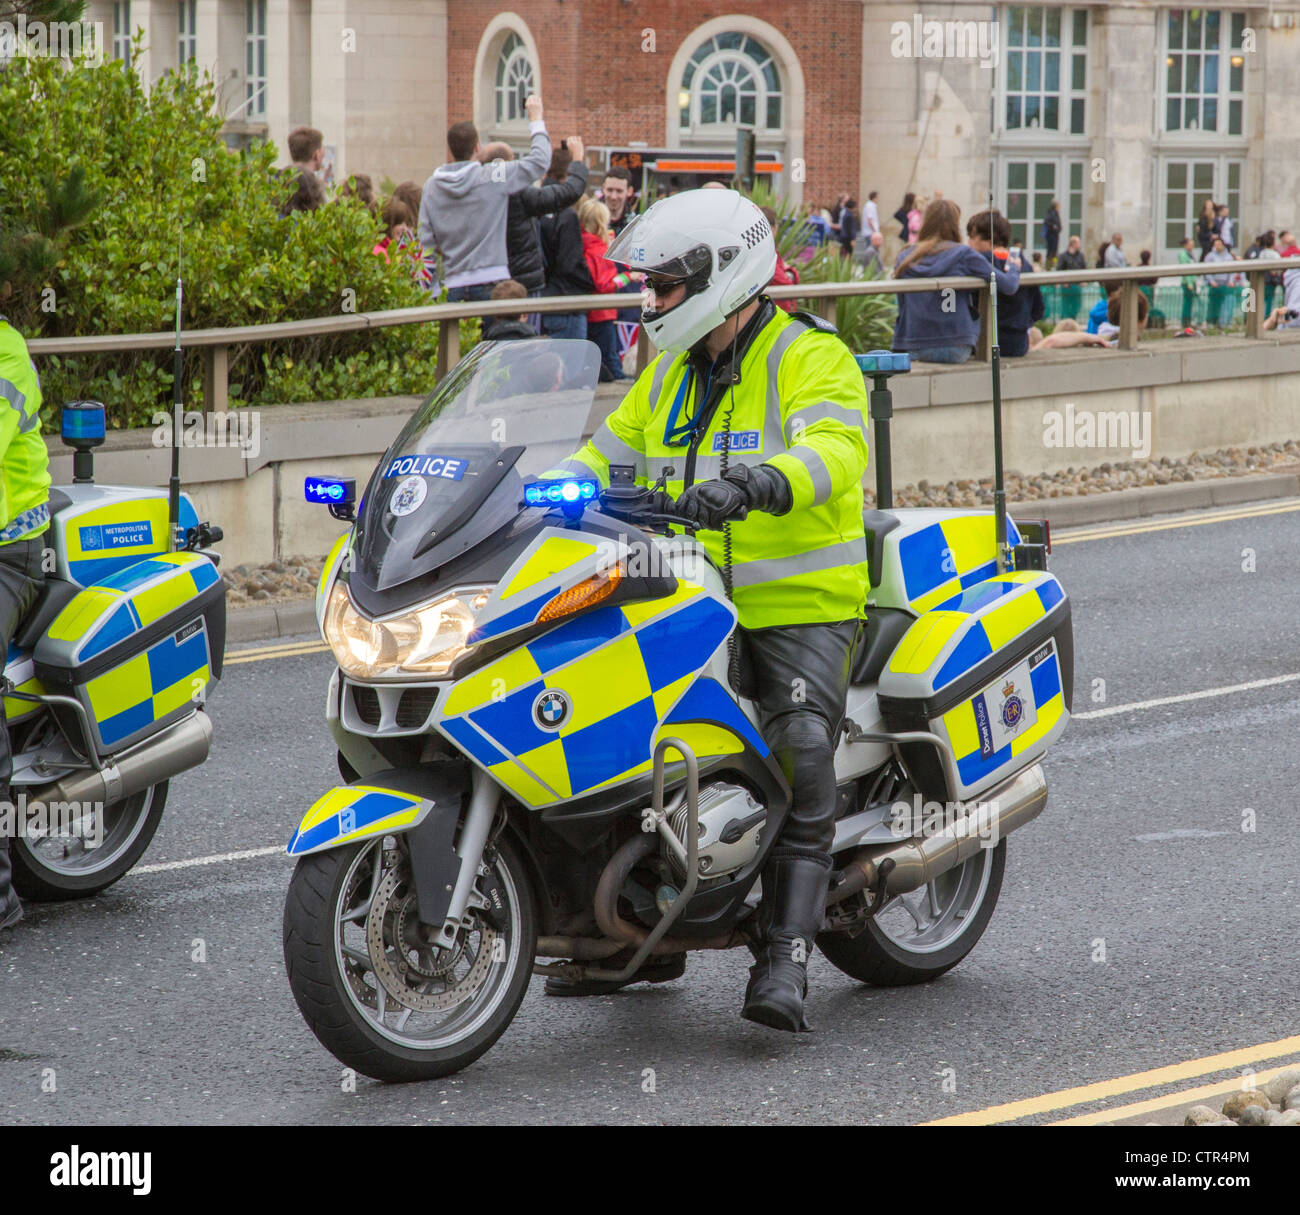 Police Motorcyclist astride his motorcycle, stationary in roadway, Dorset, England, UK - Stock Image